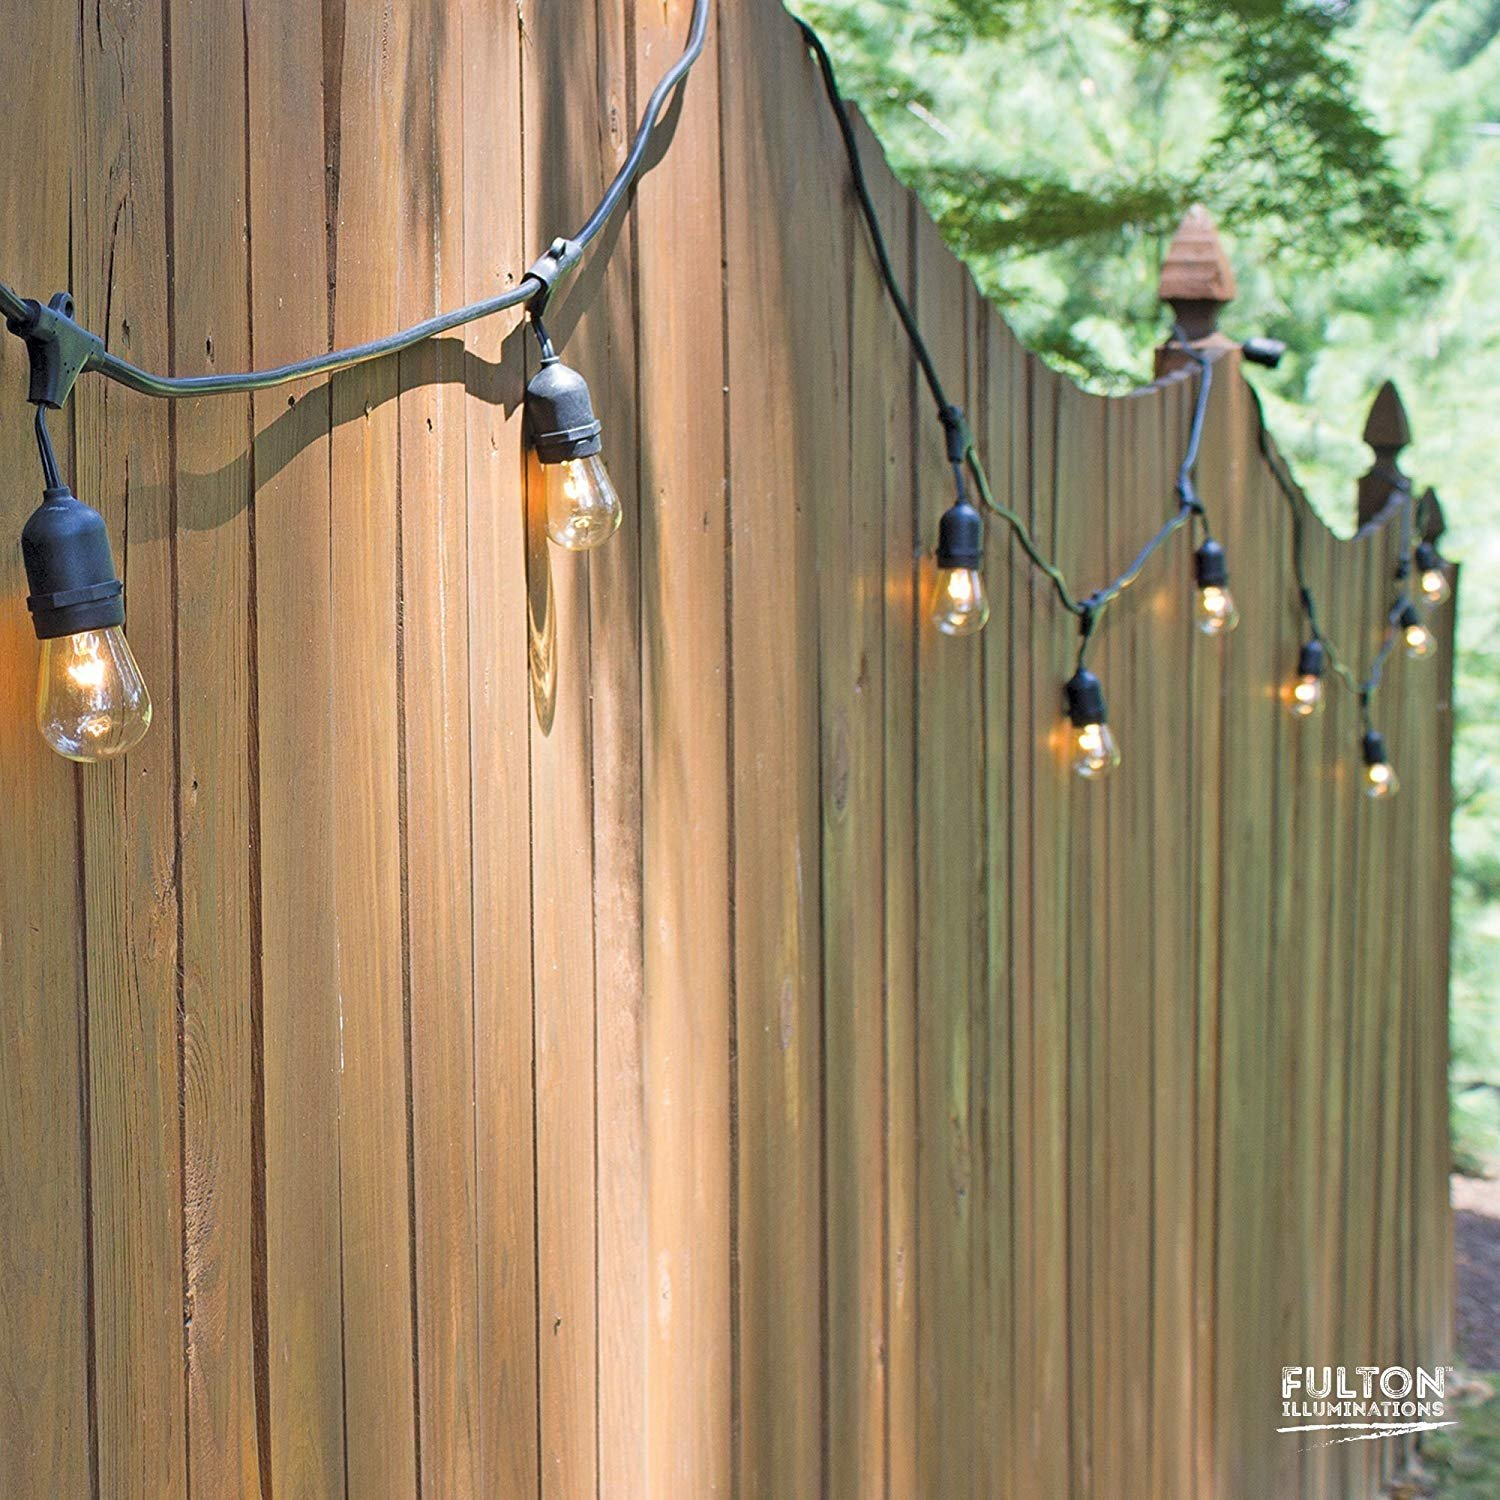 Fulton Illuminations S14 24 Bulbs Outdoor String Lights with 6 Extra Bulbs and 13 Ft Extension Cord, 48 Feet - Commercial Weatherproof Patio String Lights by Fulton Illuminations (Image #3)